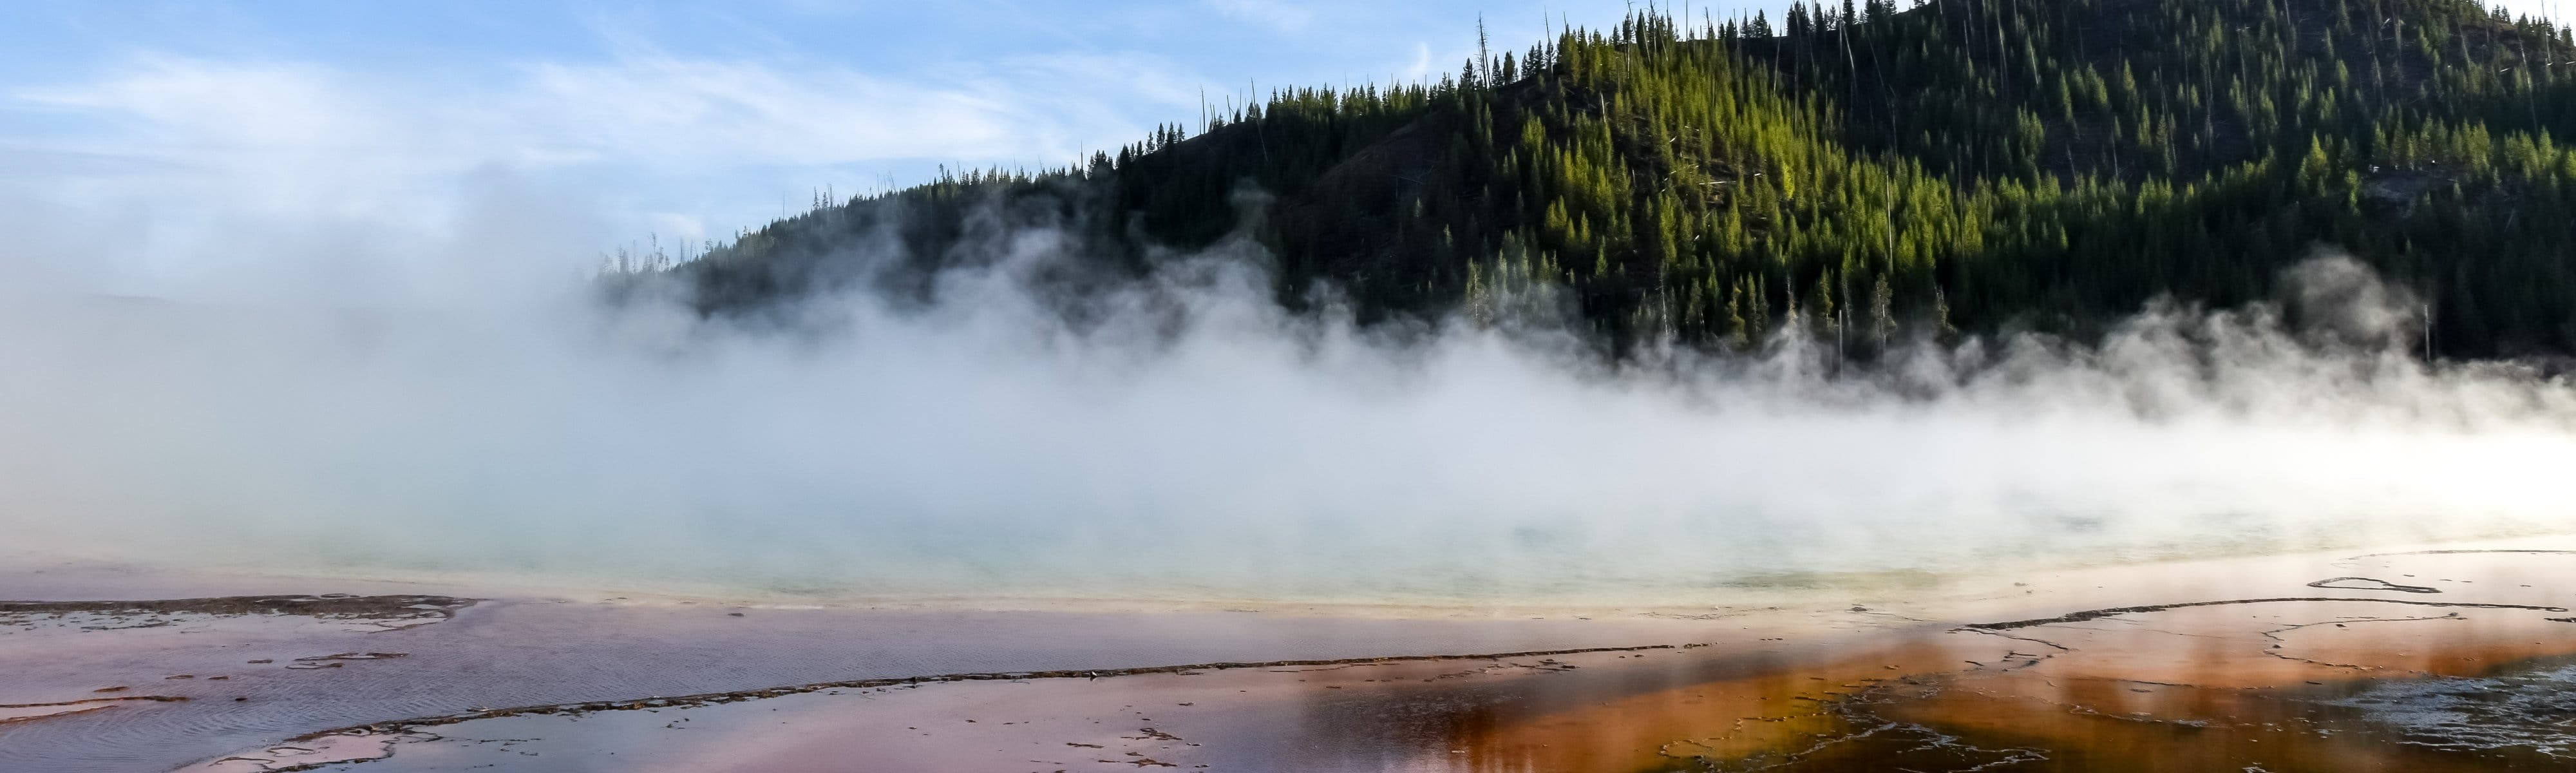 Geothermal steam coming from the earth.